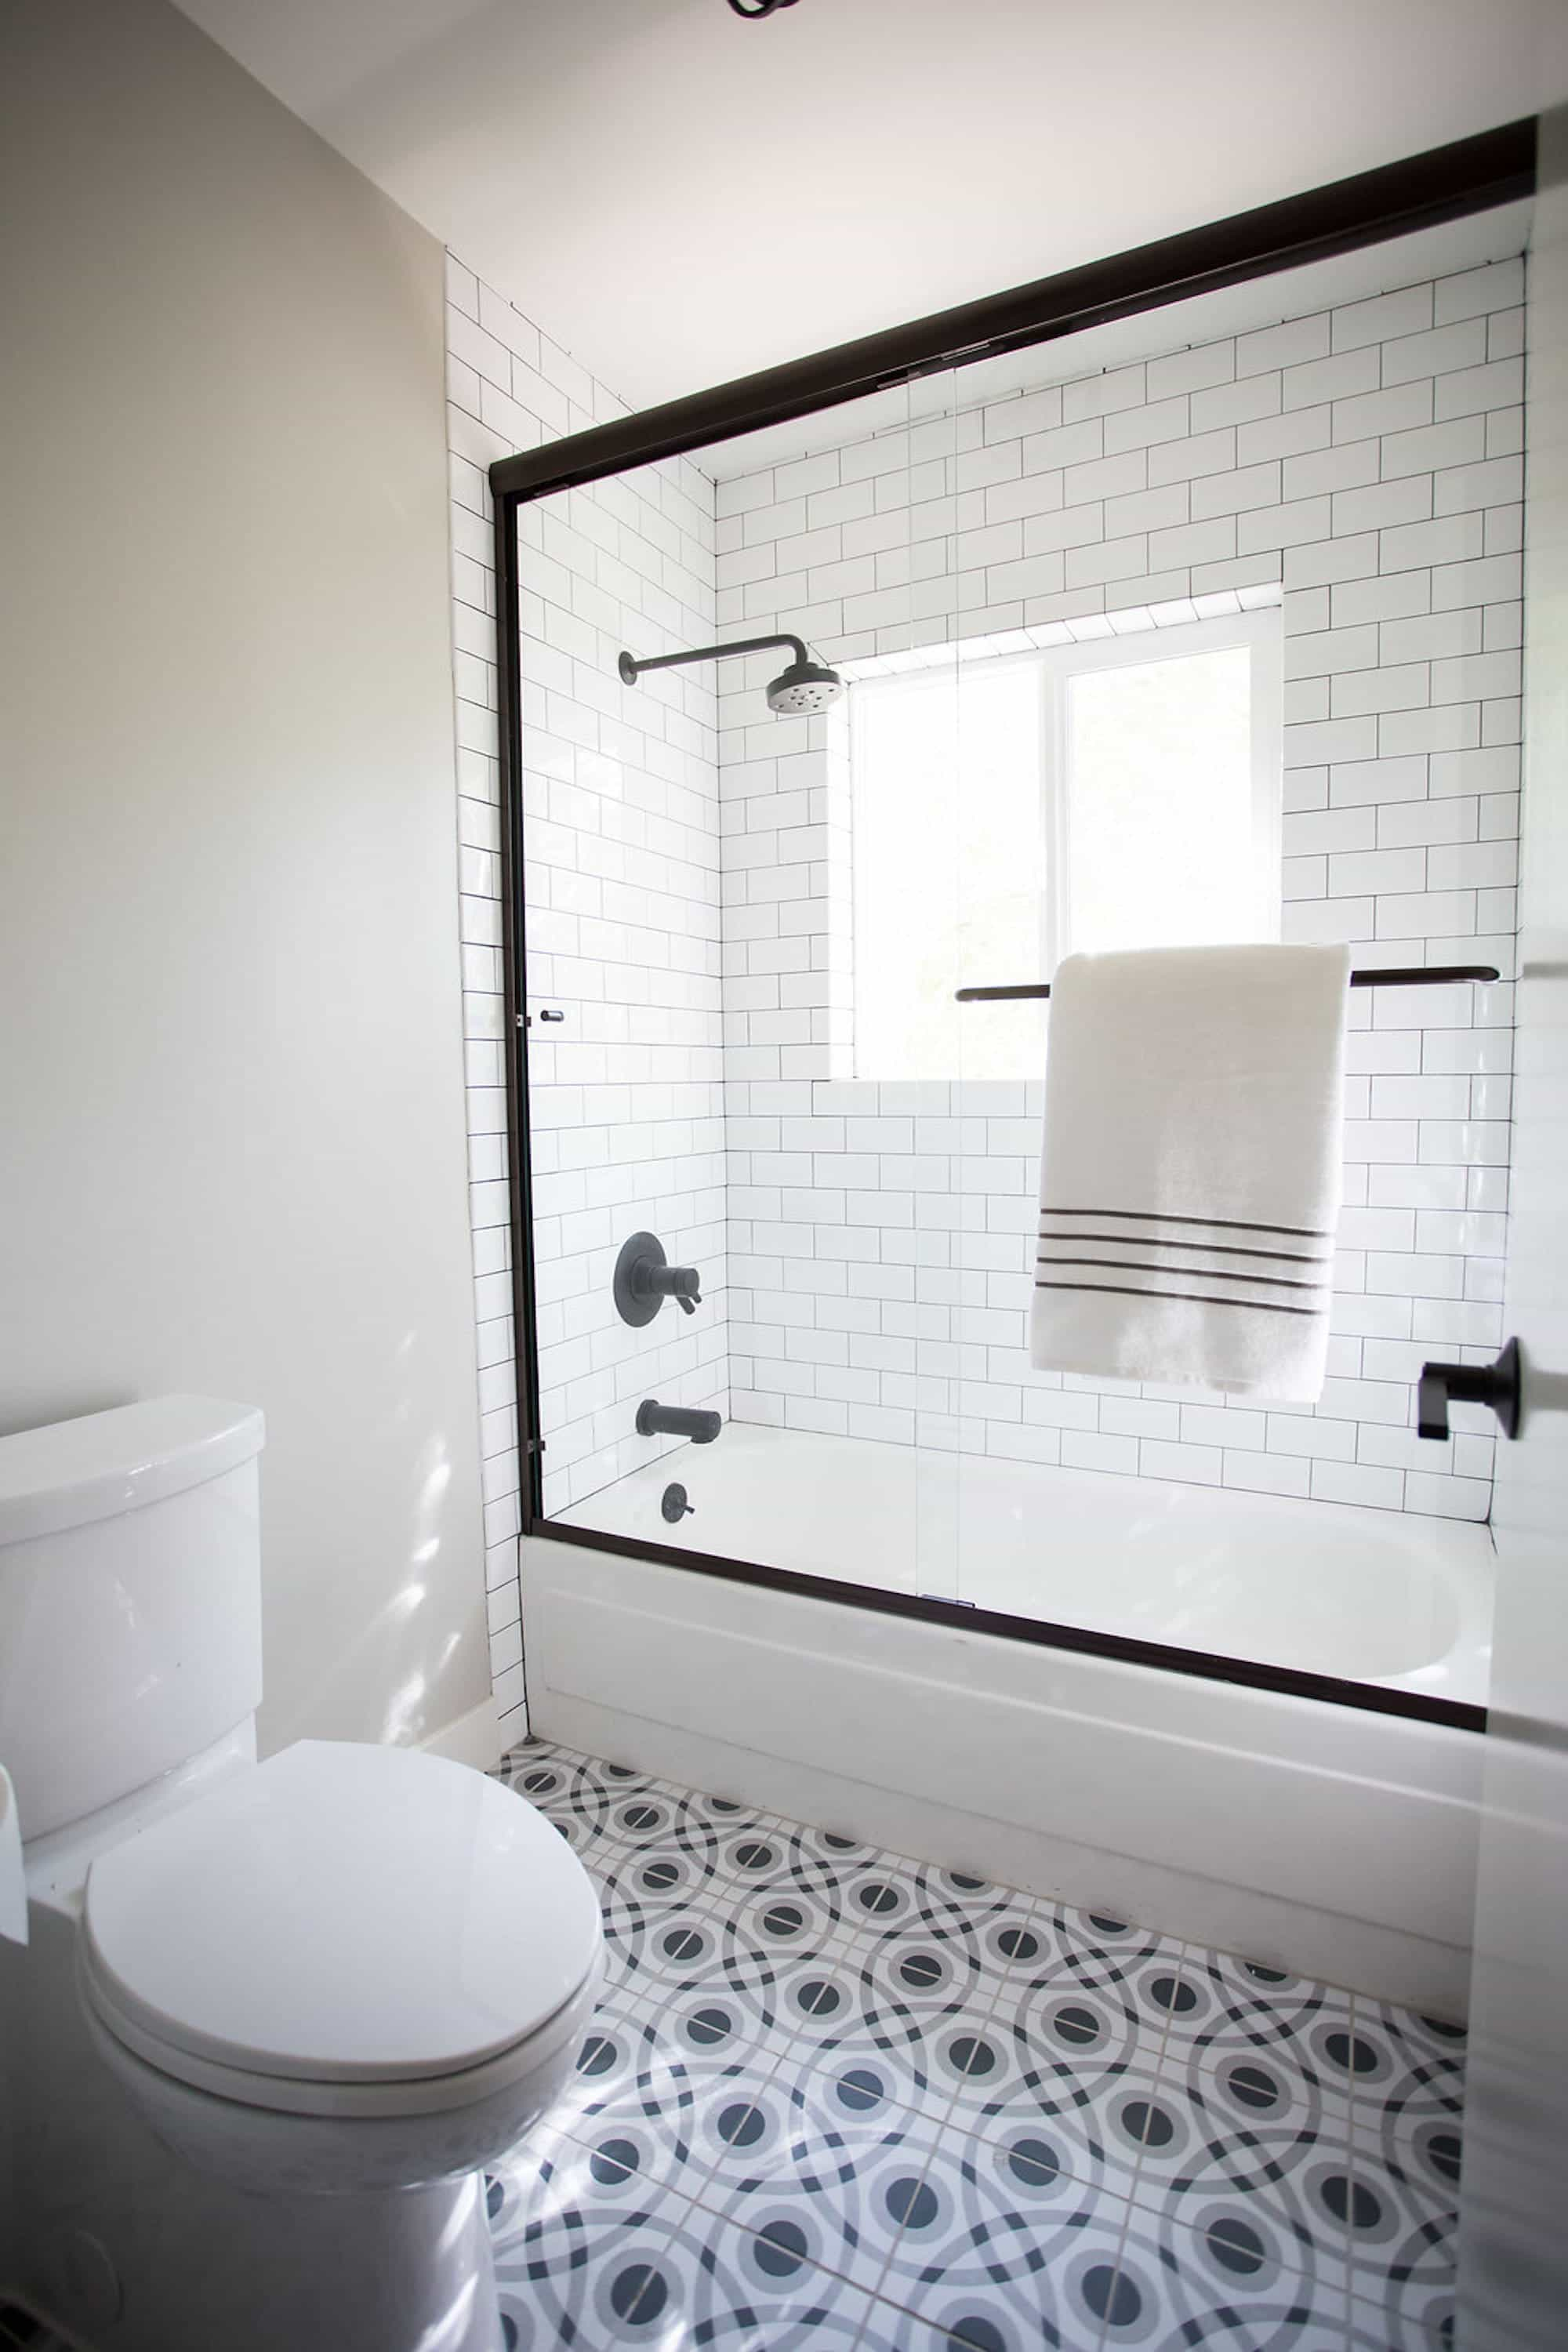 Black And White Bathroom With Patterned Floor Tile And Subway Tile Glass Door Shower (Image 3 of 16)